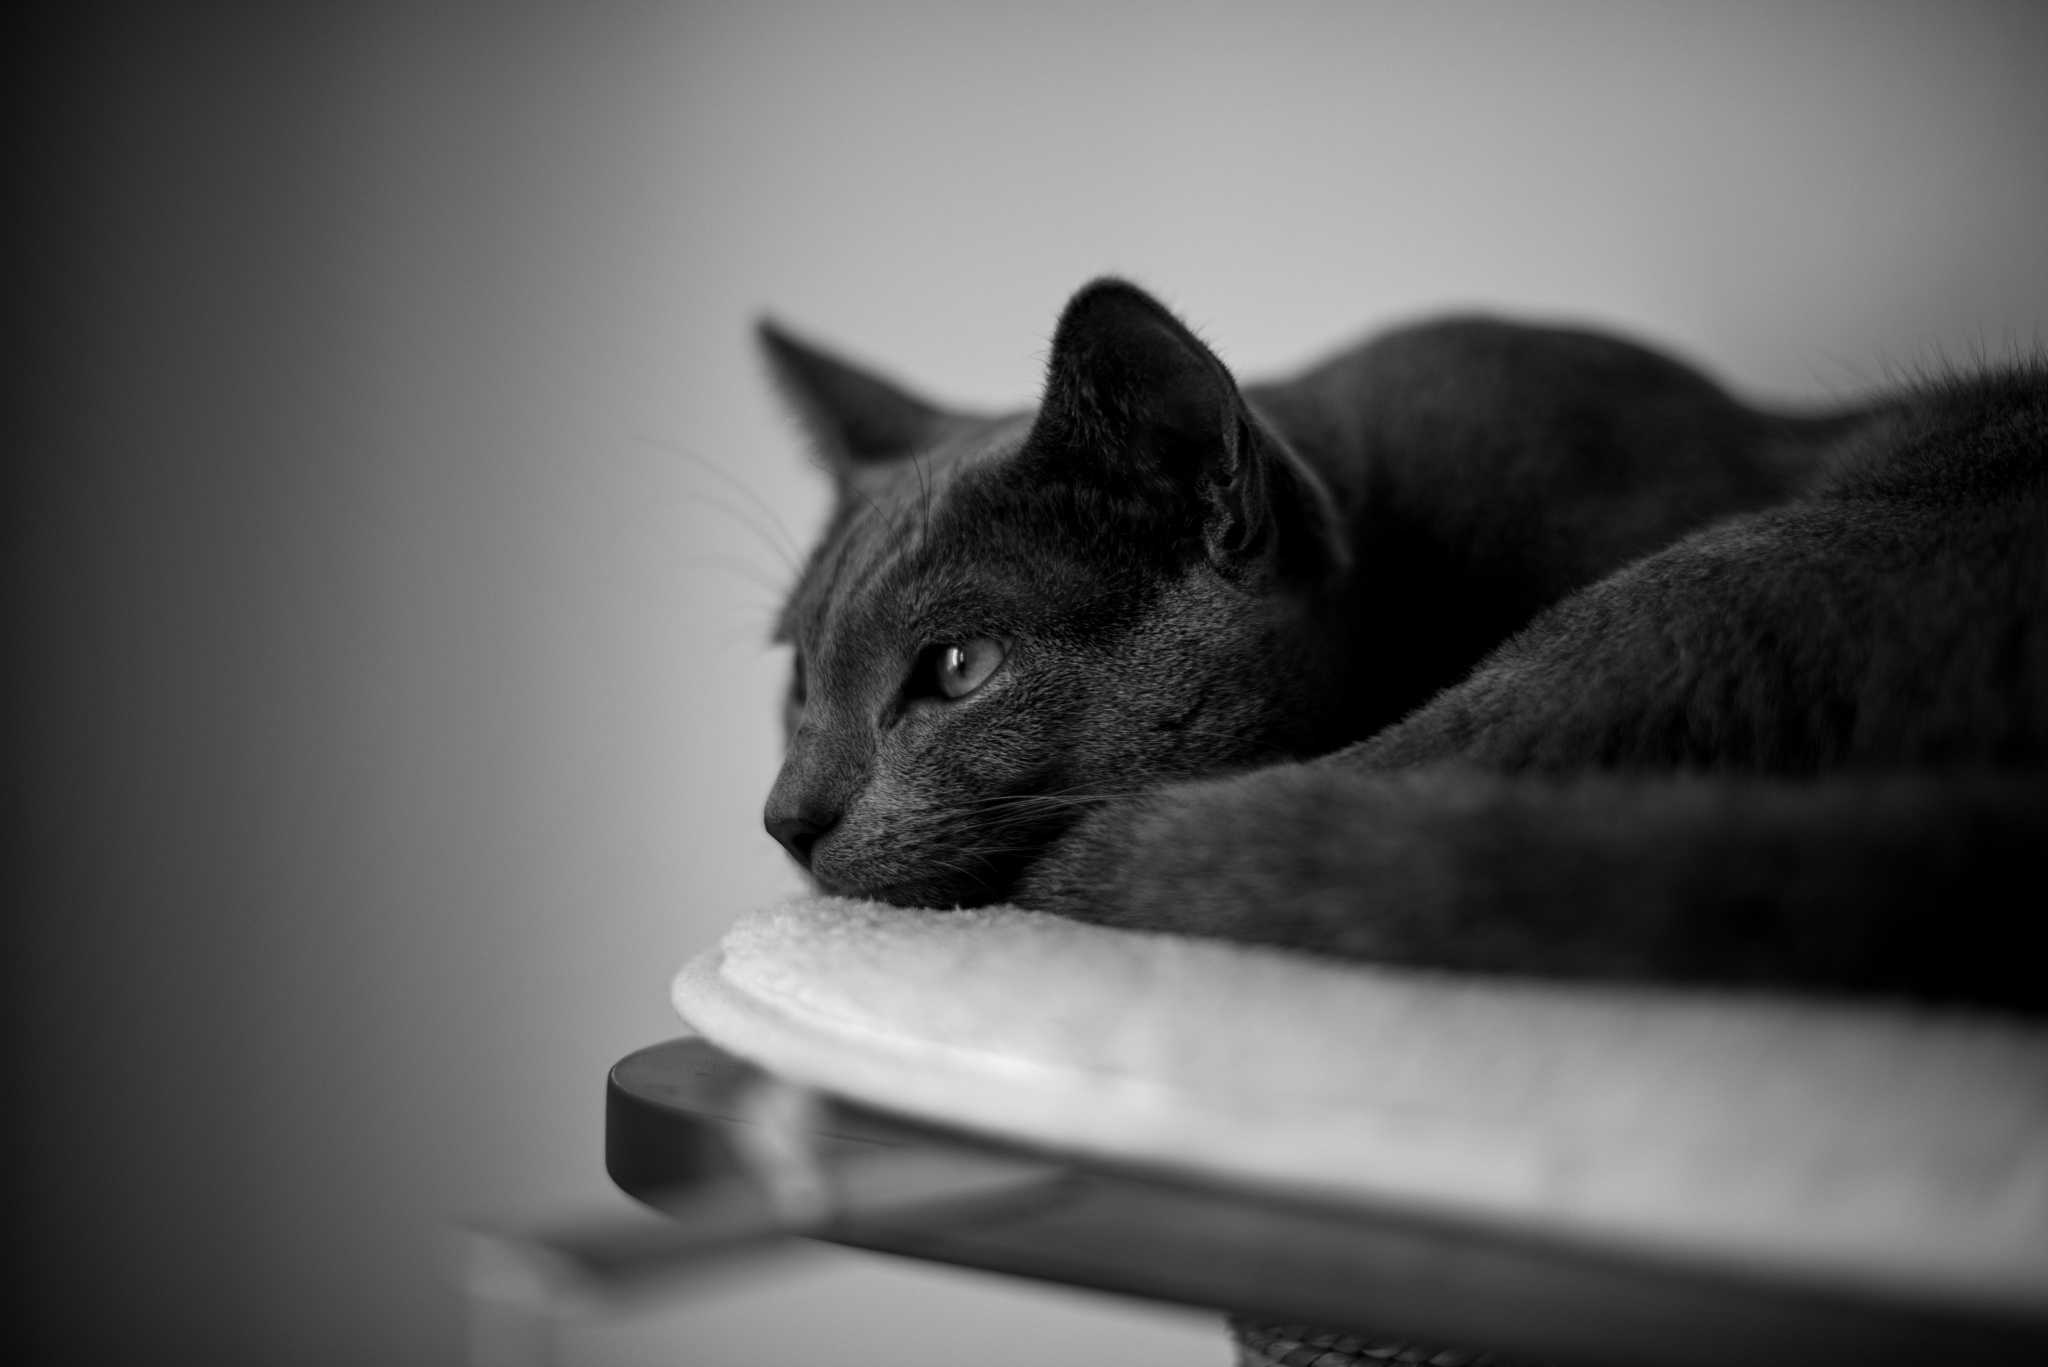 Tips for Editing Cat Photos